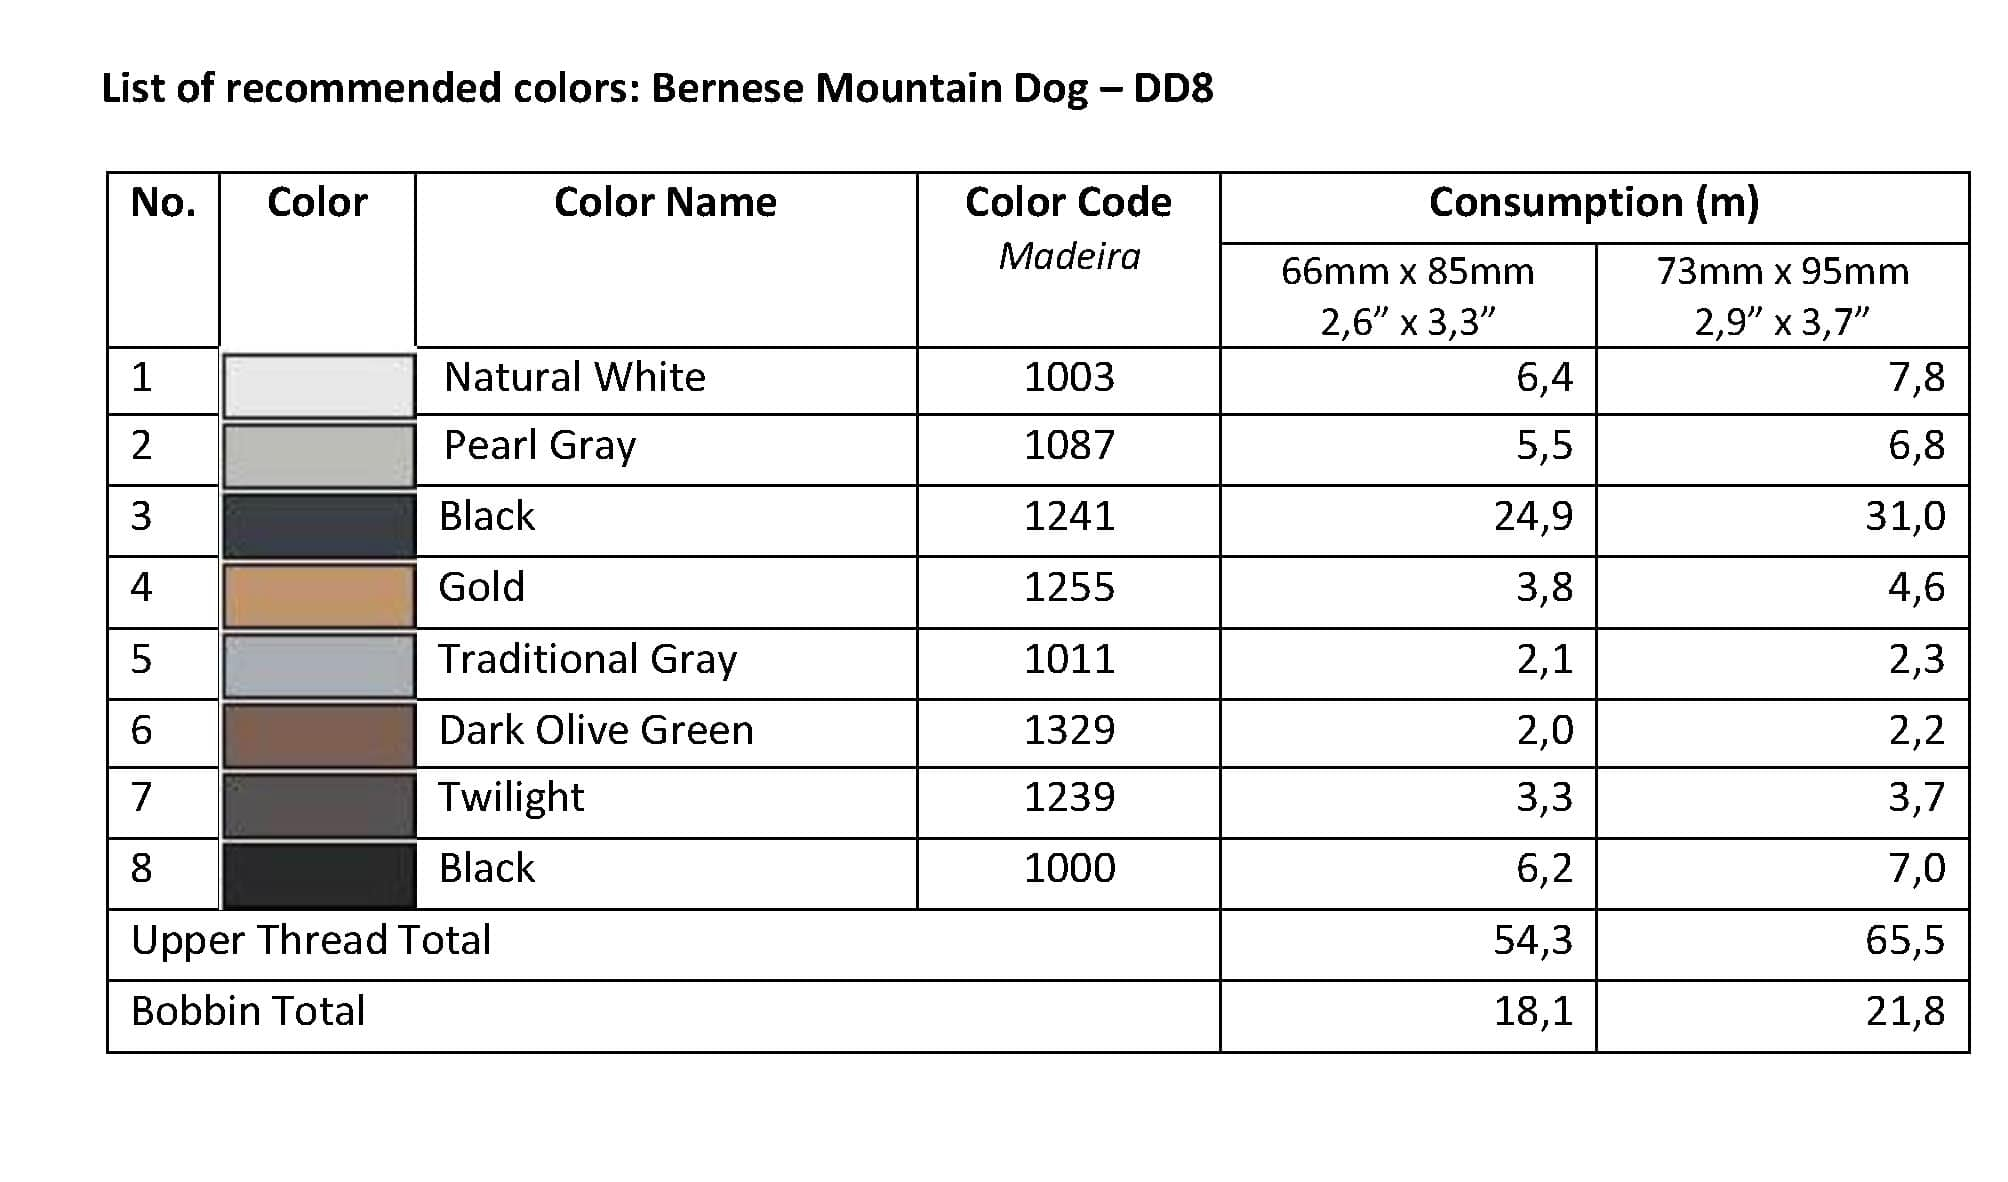 List of Recommended Colors - Bernese Mountain Dog DD8